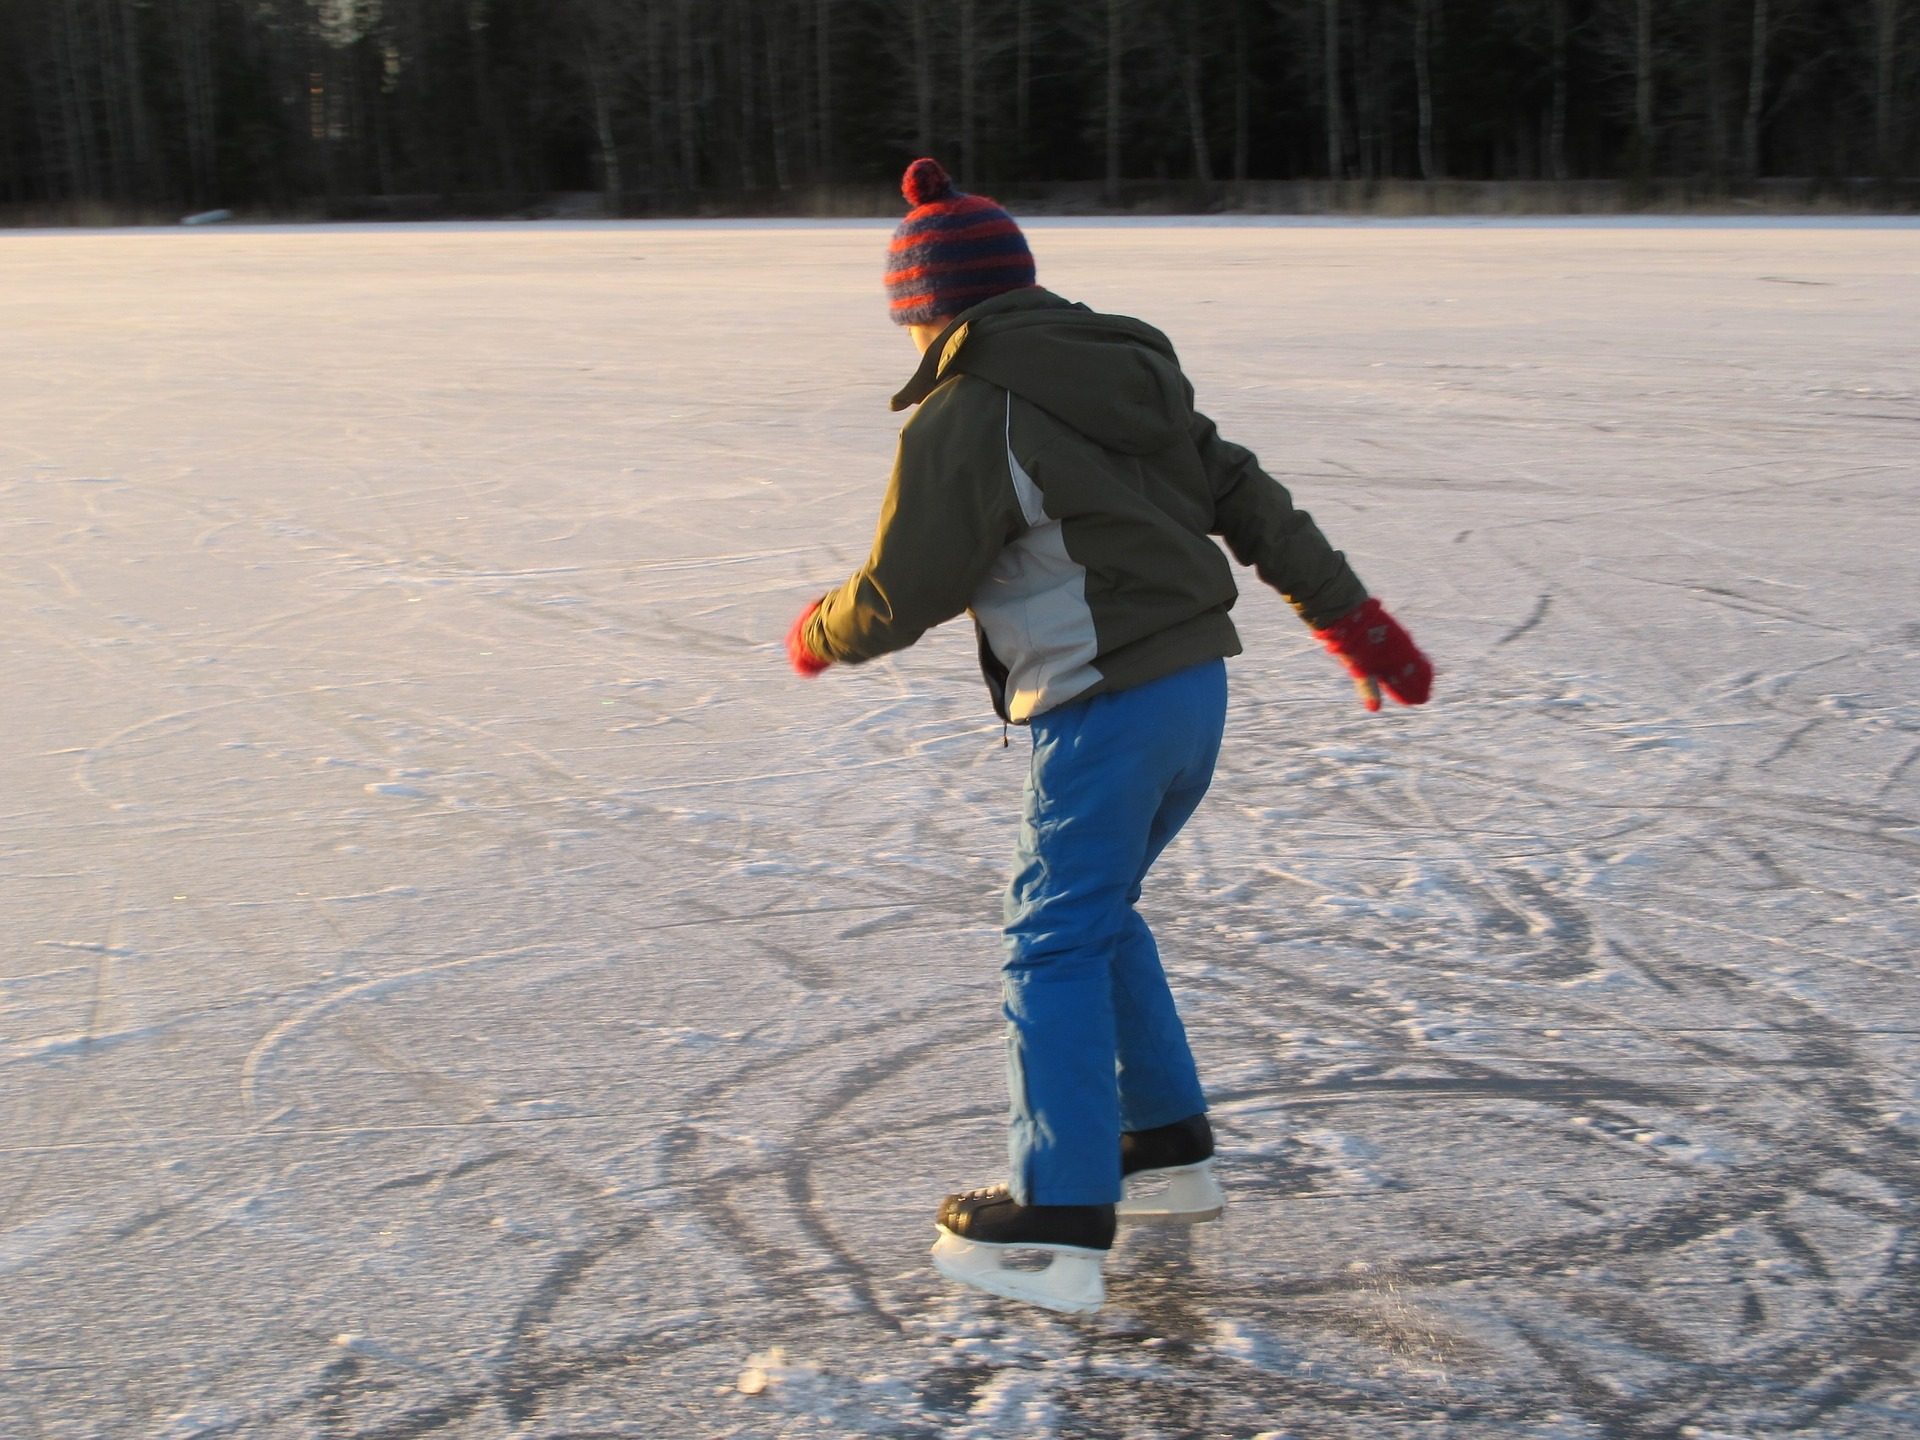 skater ice skating outside on frozen pond